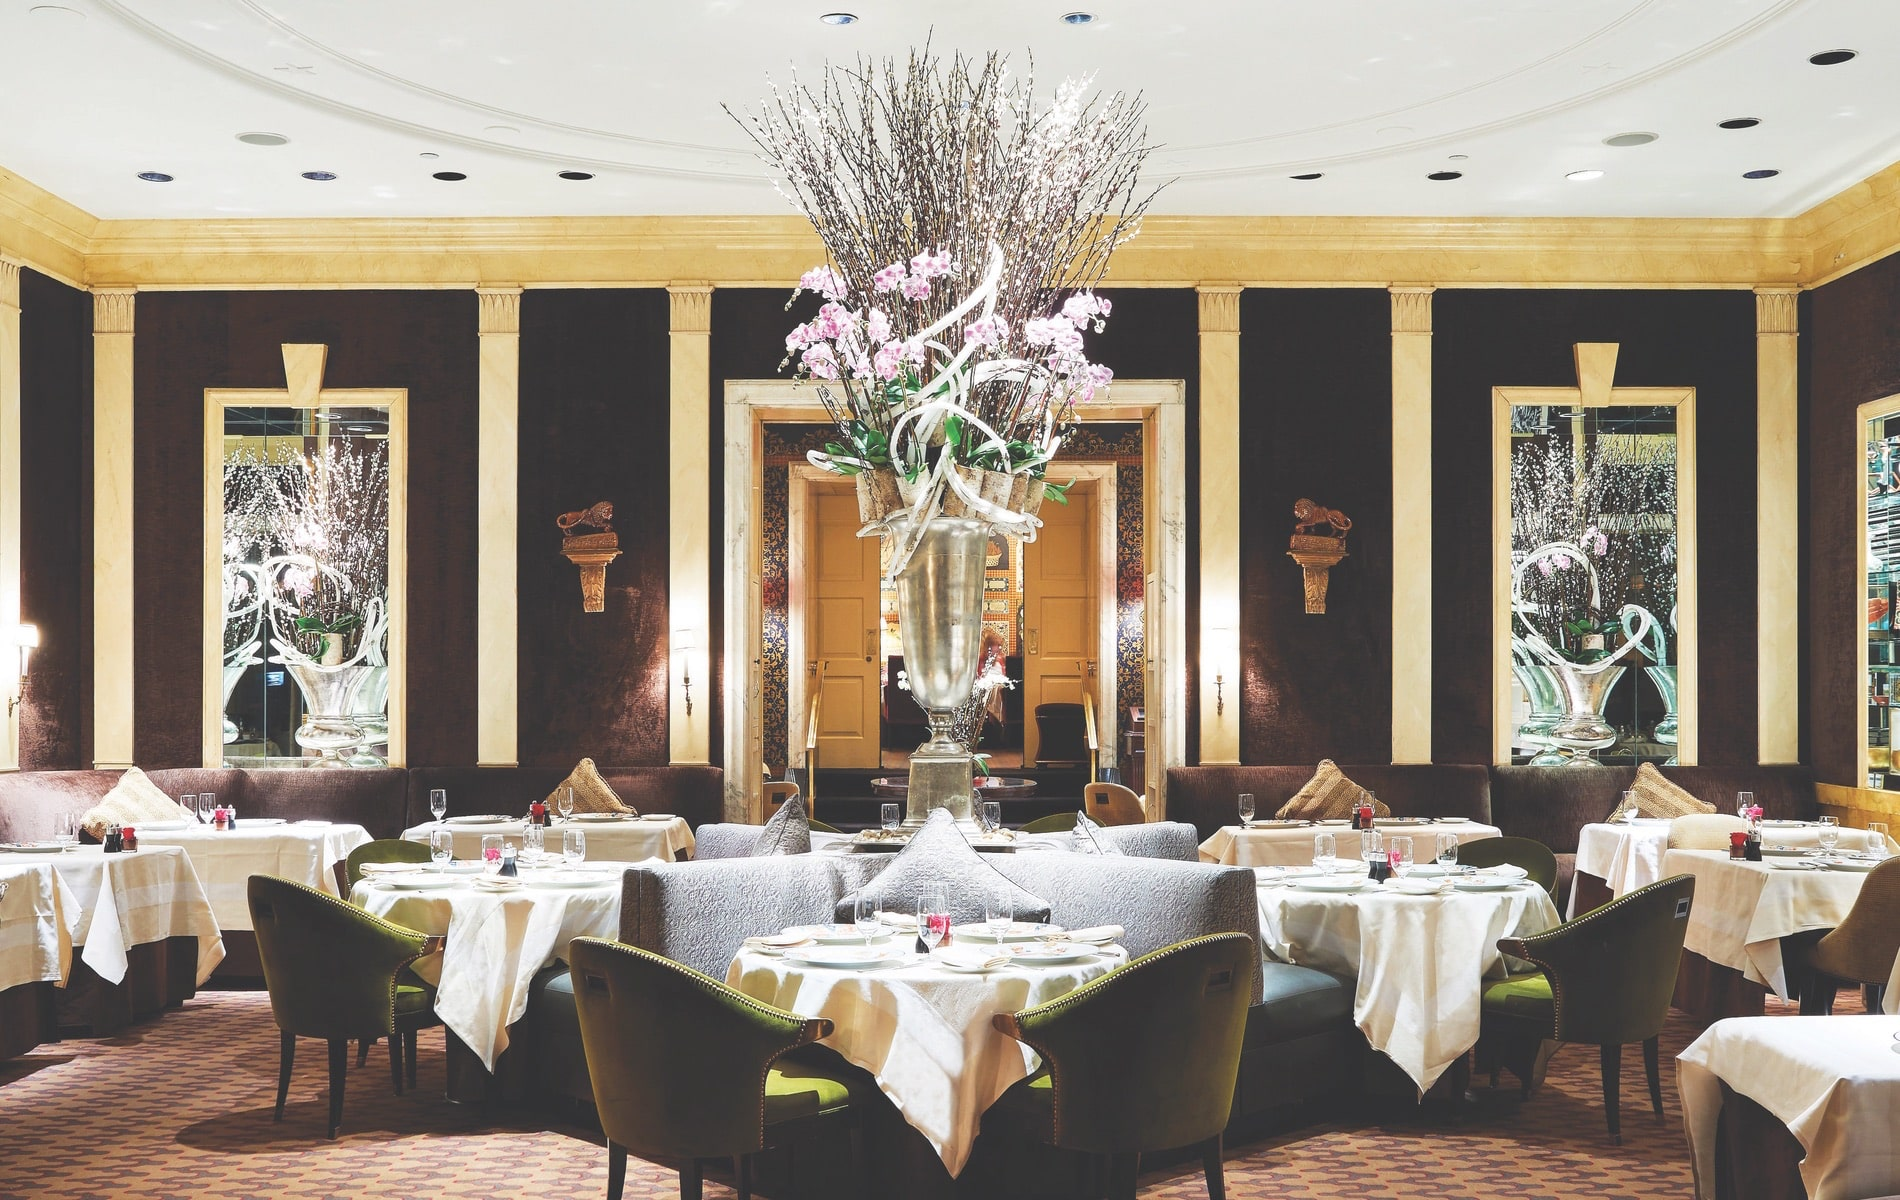 The Carlyle Restaurant serves up American cuisine with a European edge in an intimate, country house setting, hotel, new york